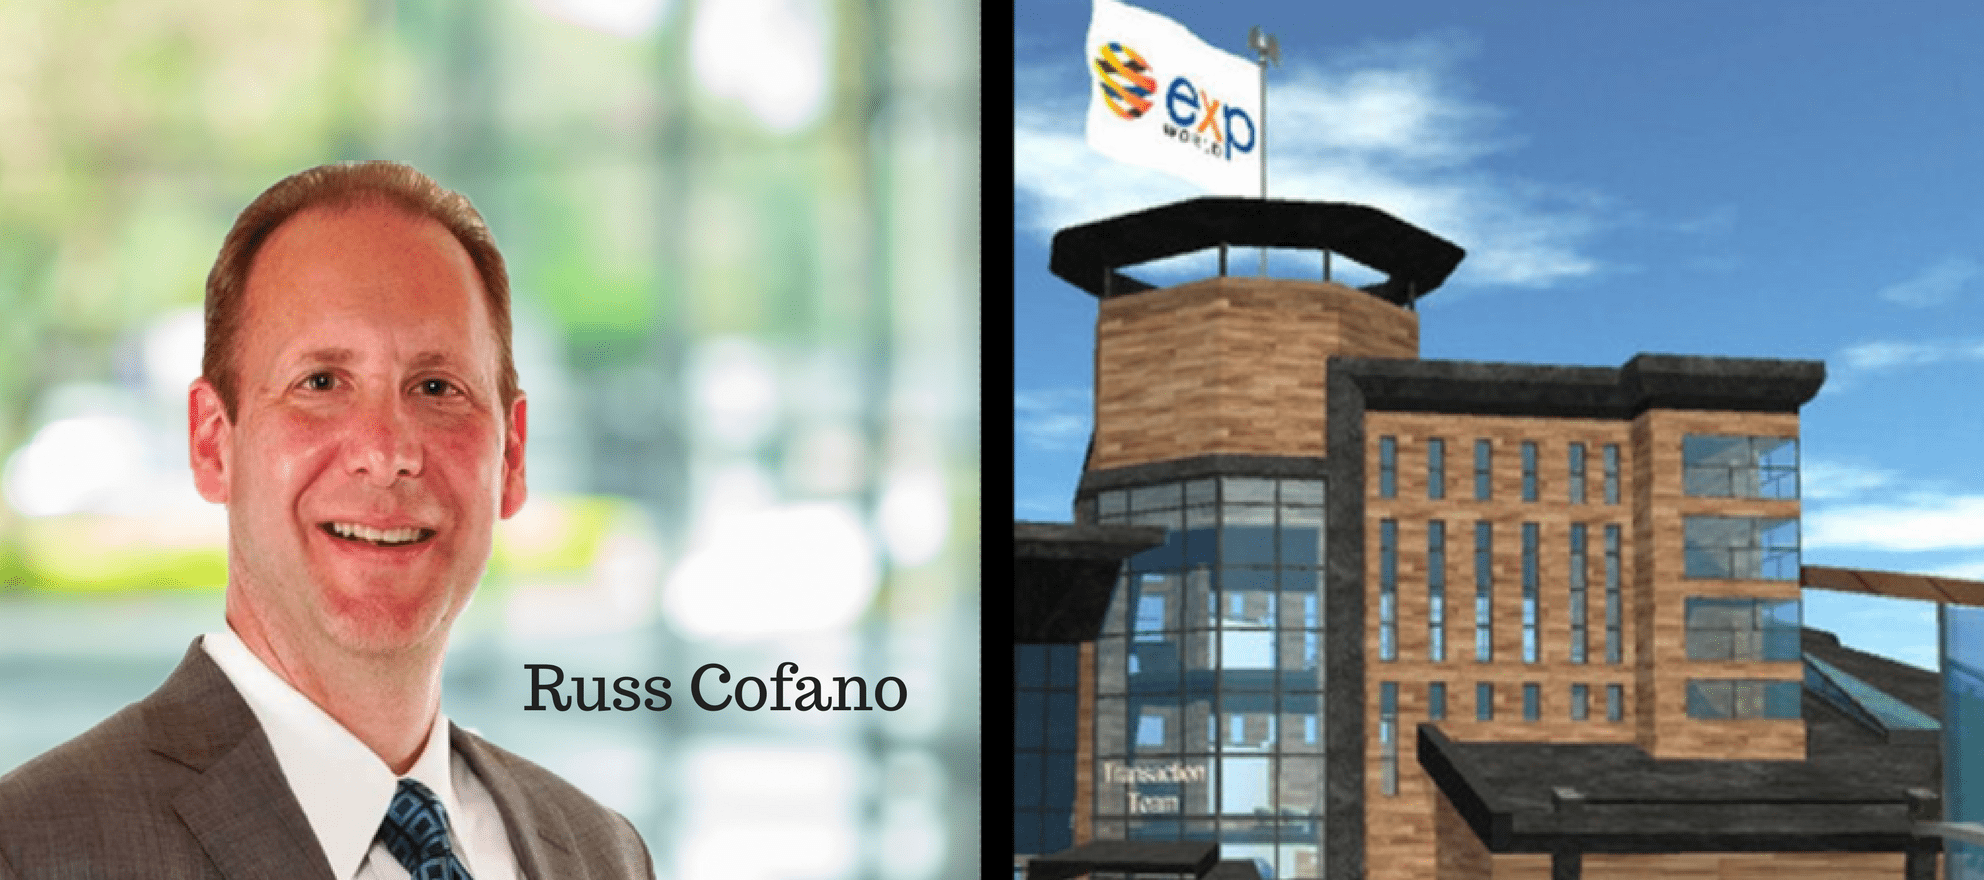 Russ Cofano resigns from eXp World Holdings